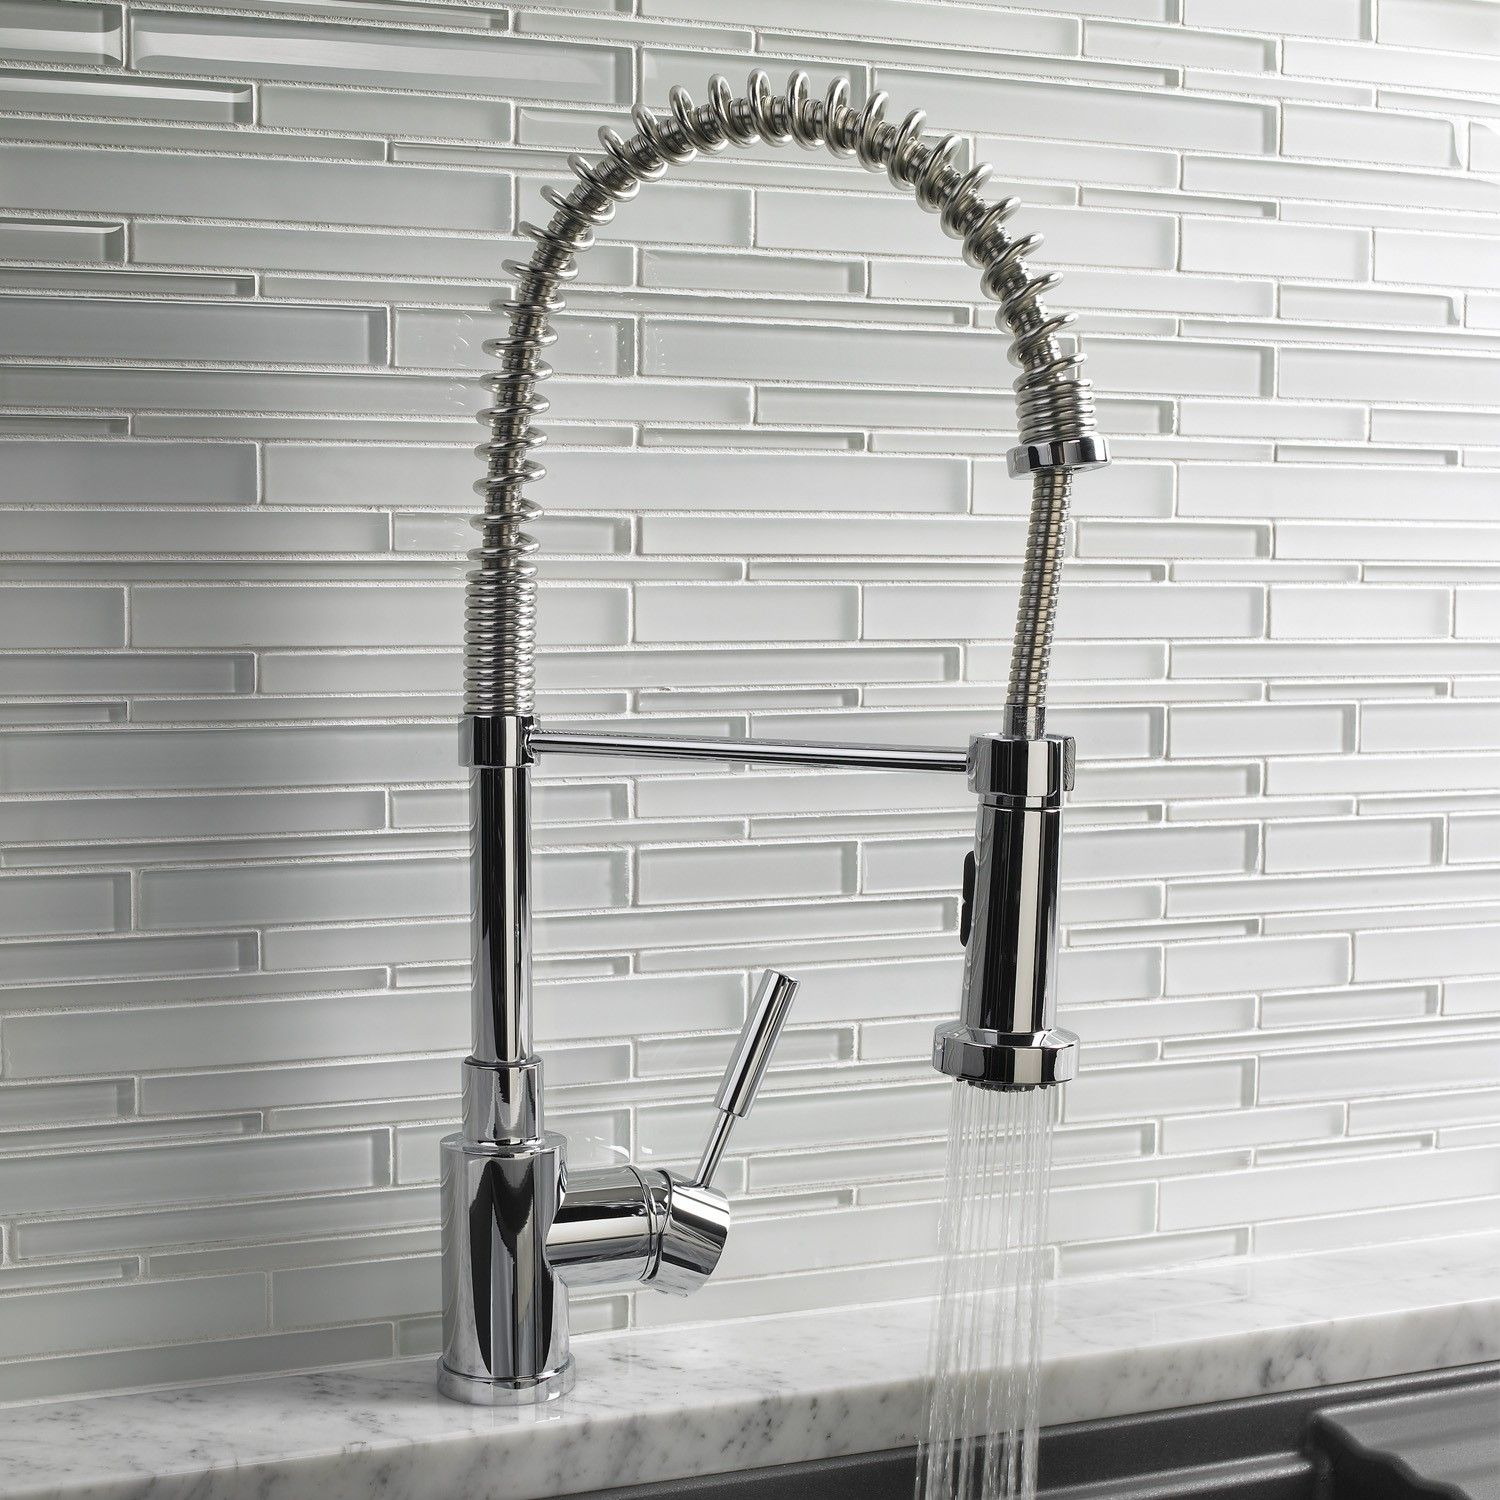 Delightful The Benefits Of A Pre Rinse Kitchen Faucet